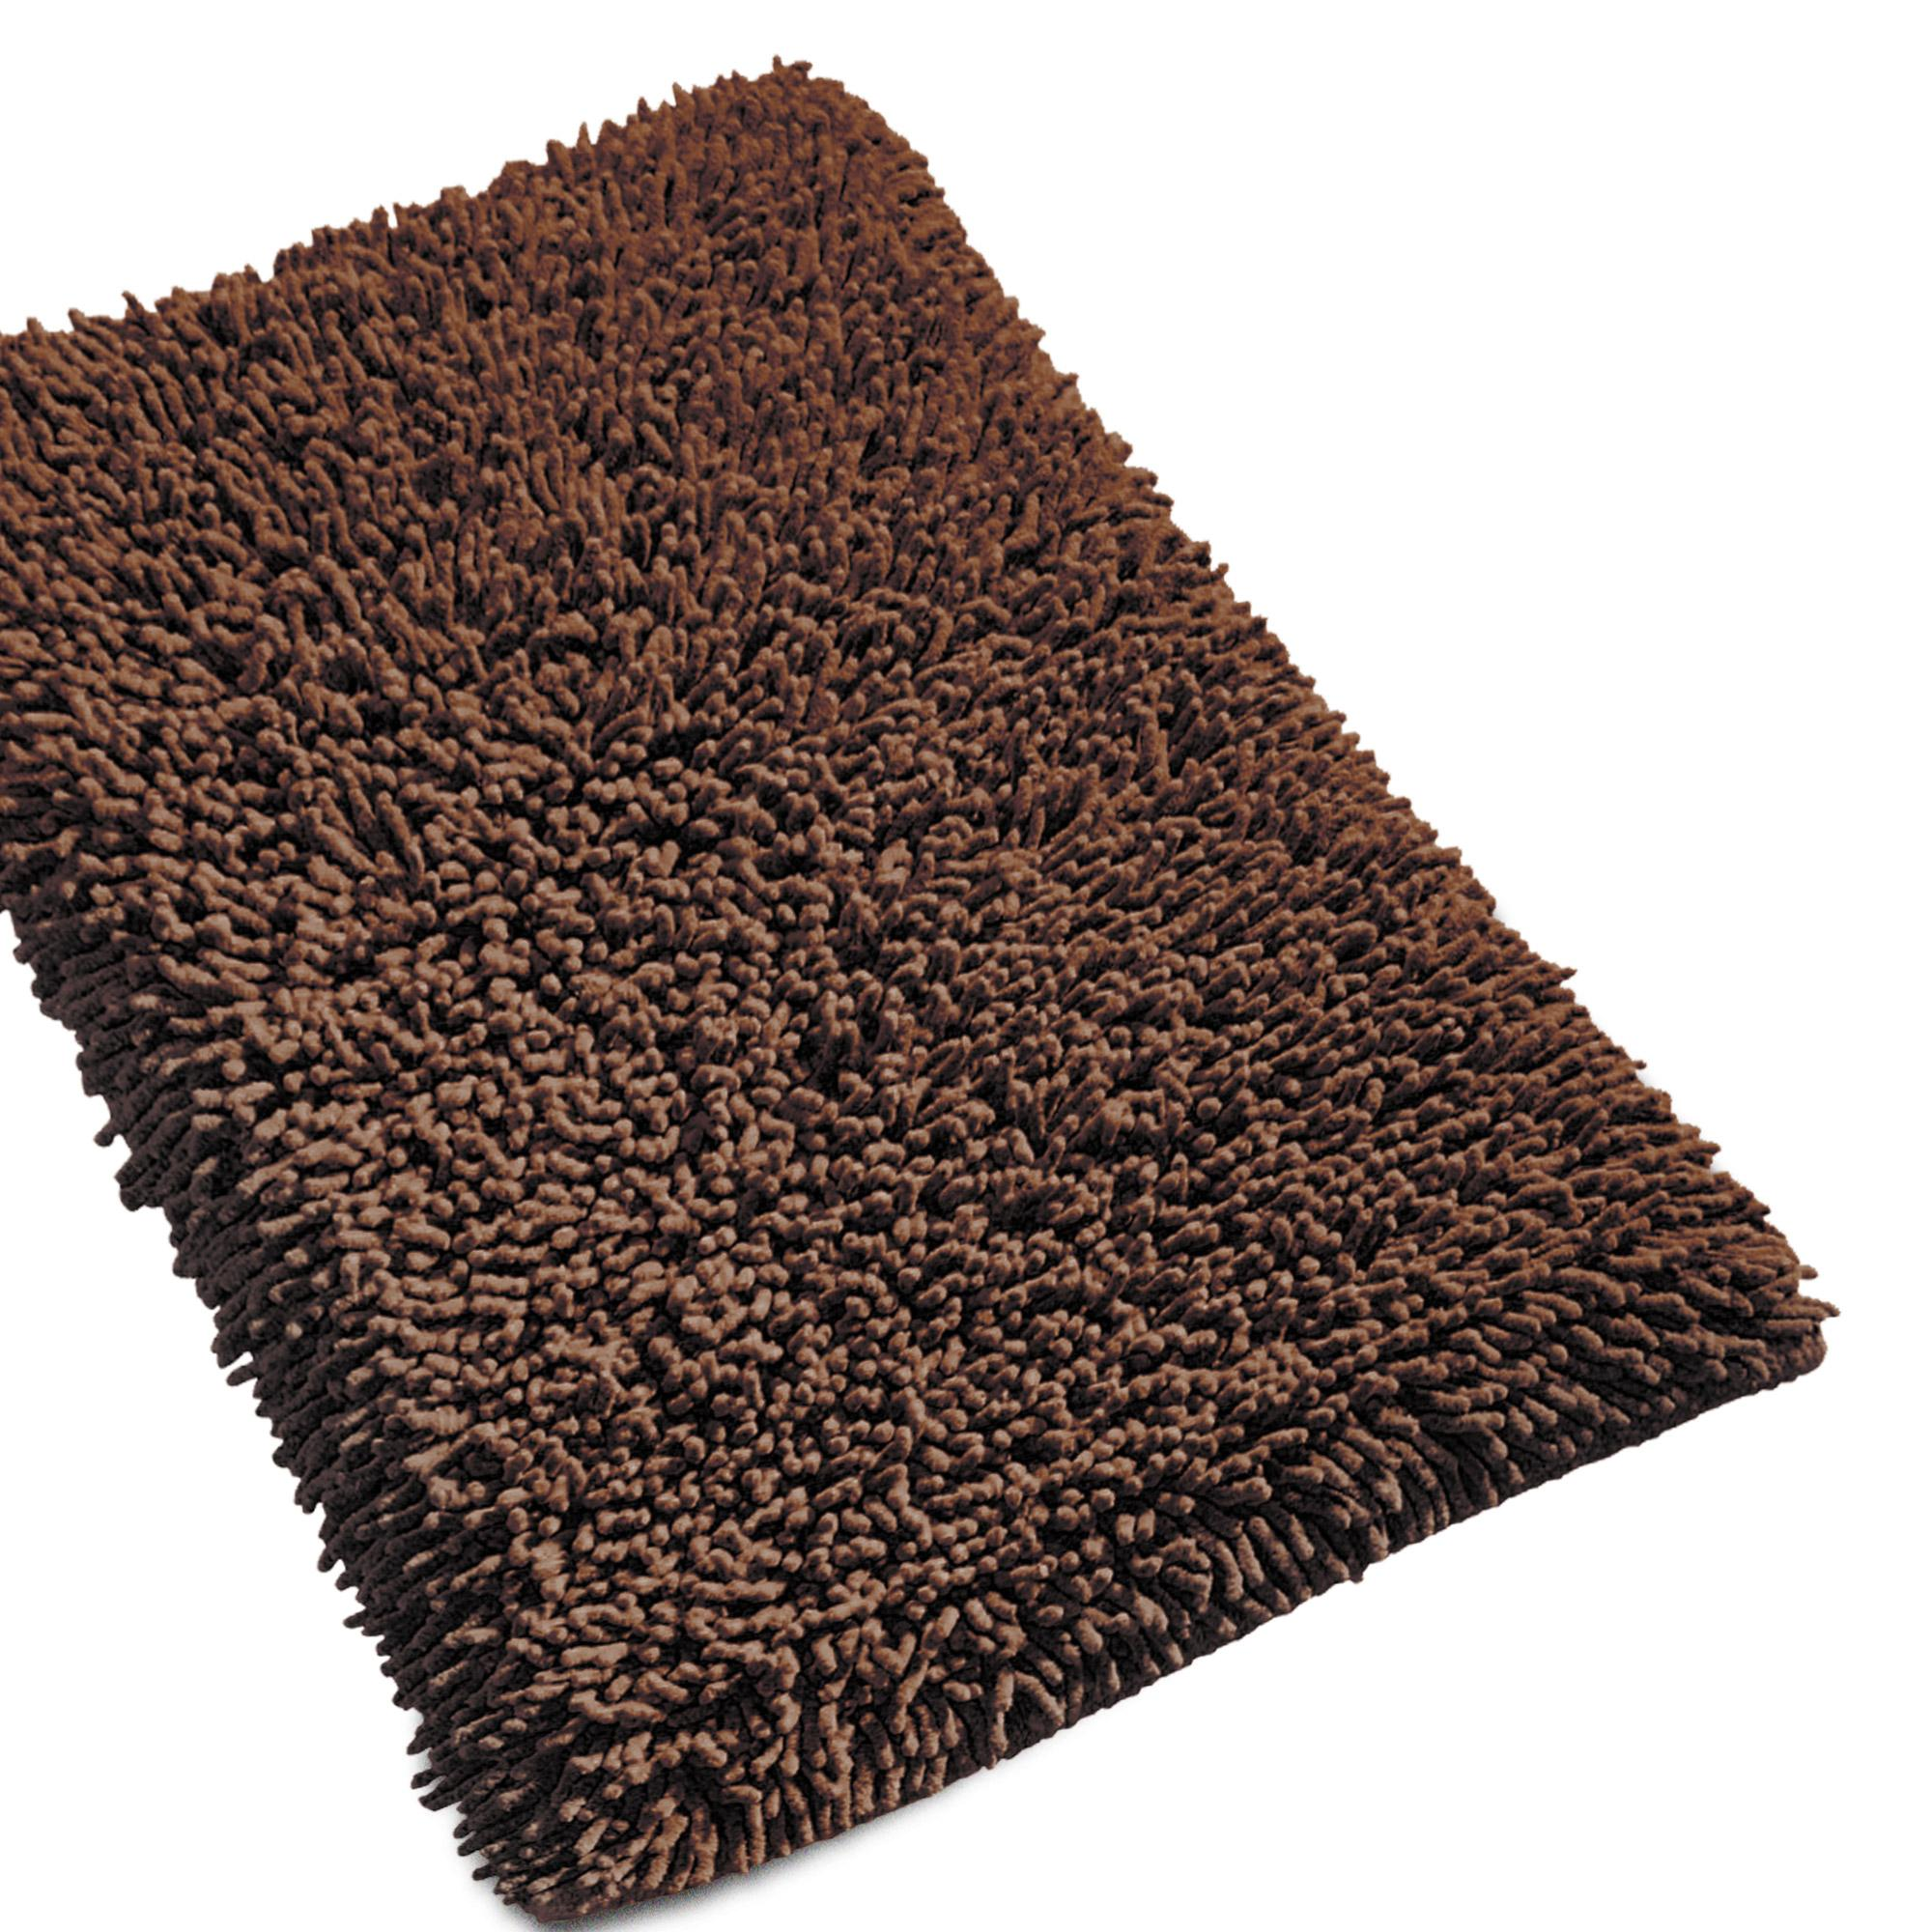 tapis de bain 50x80cm uni coton chenille marron linnea vente de linge de maison. Black Bedroom Furniture Sets. Home Design Ideas